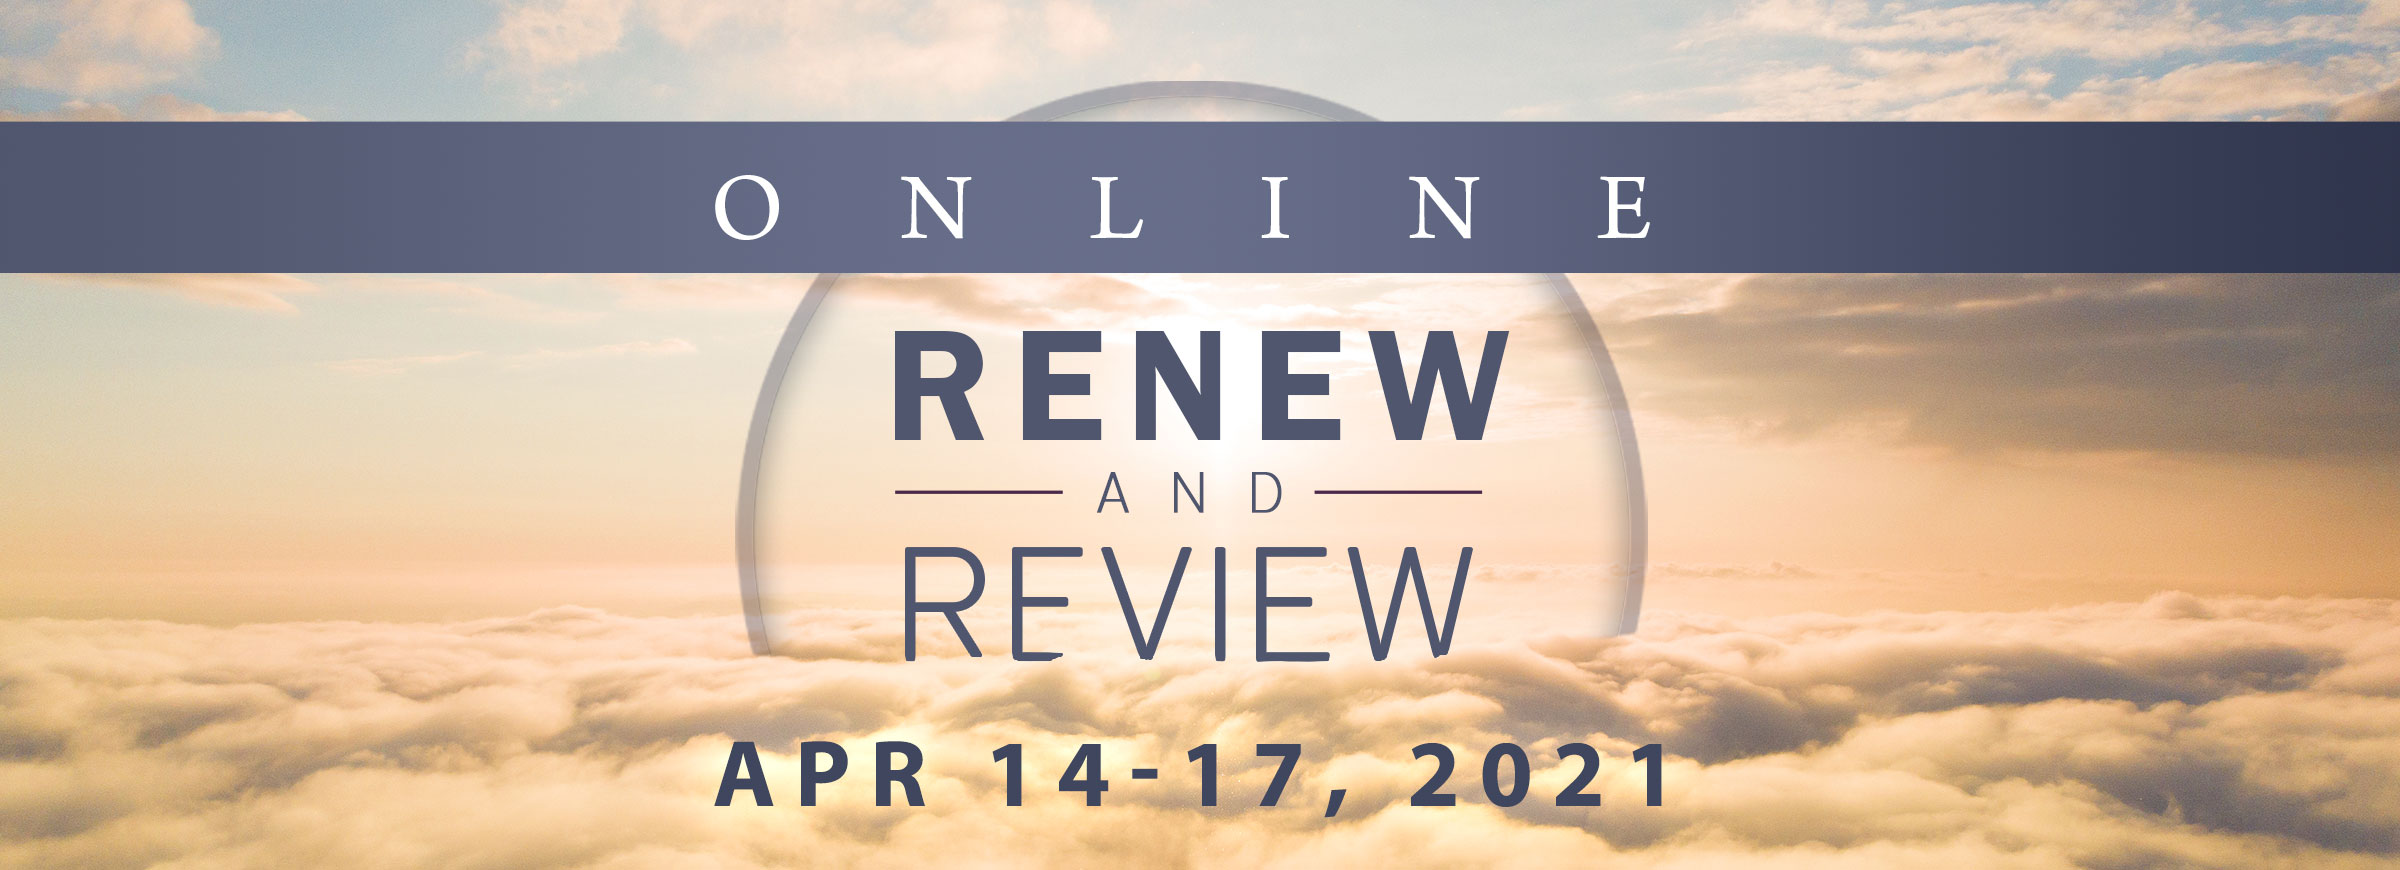 Renew and Review Online April 2021